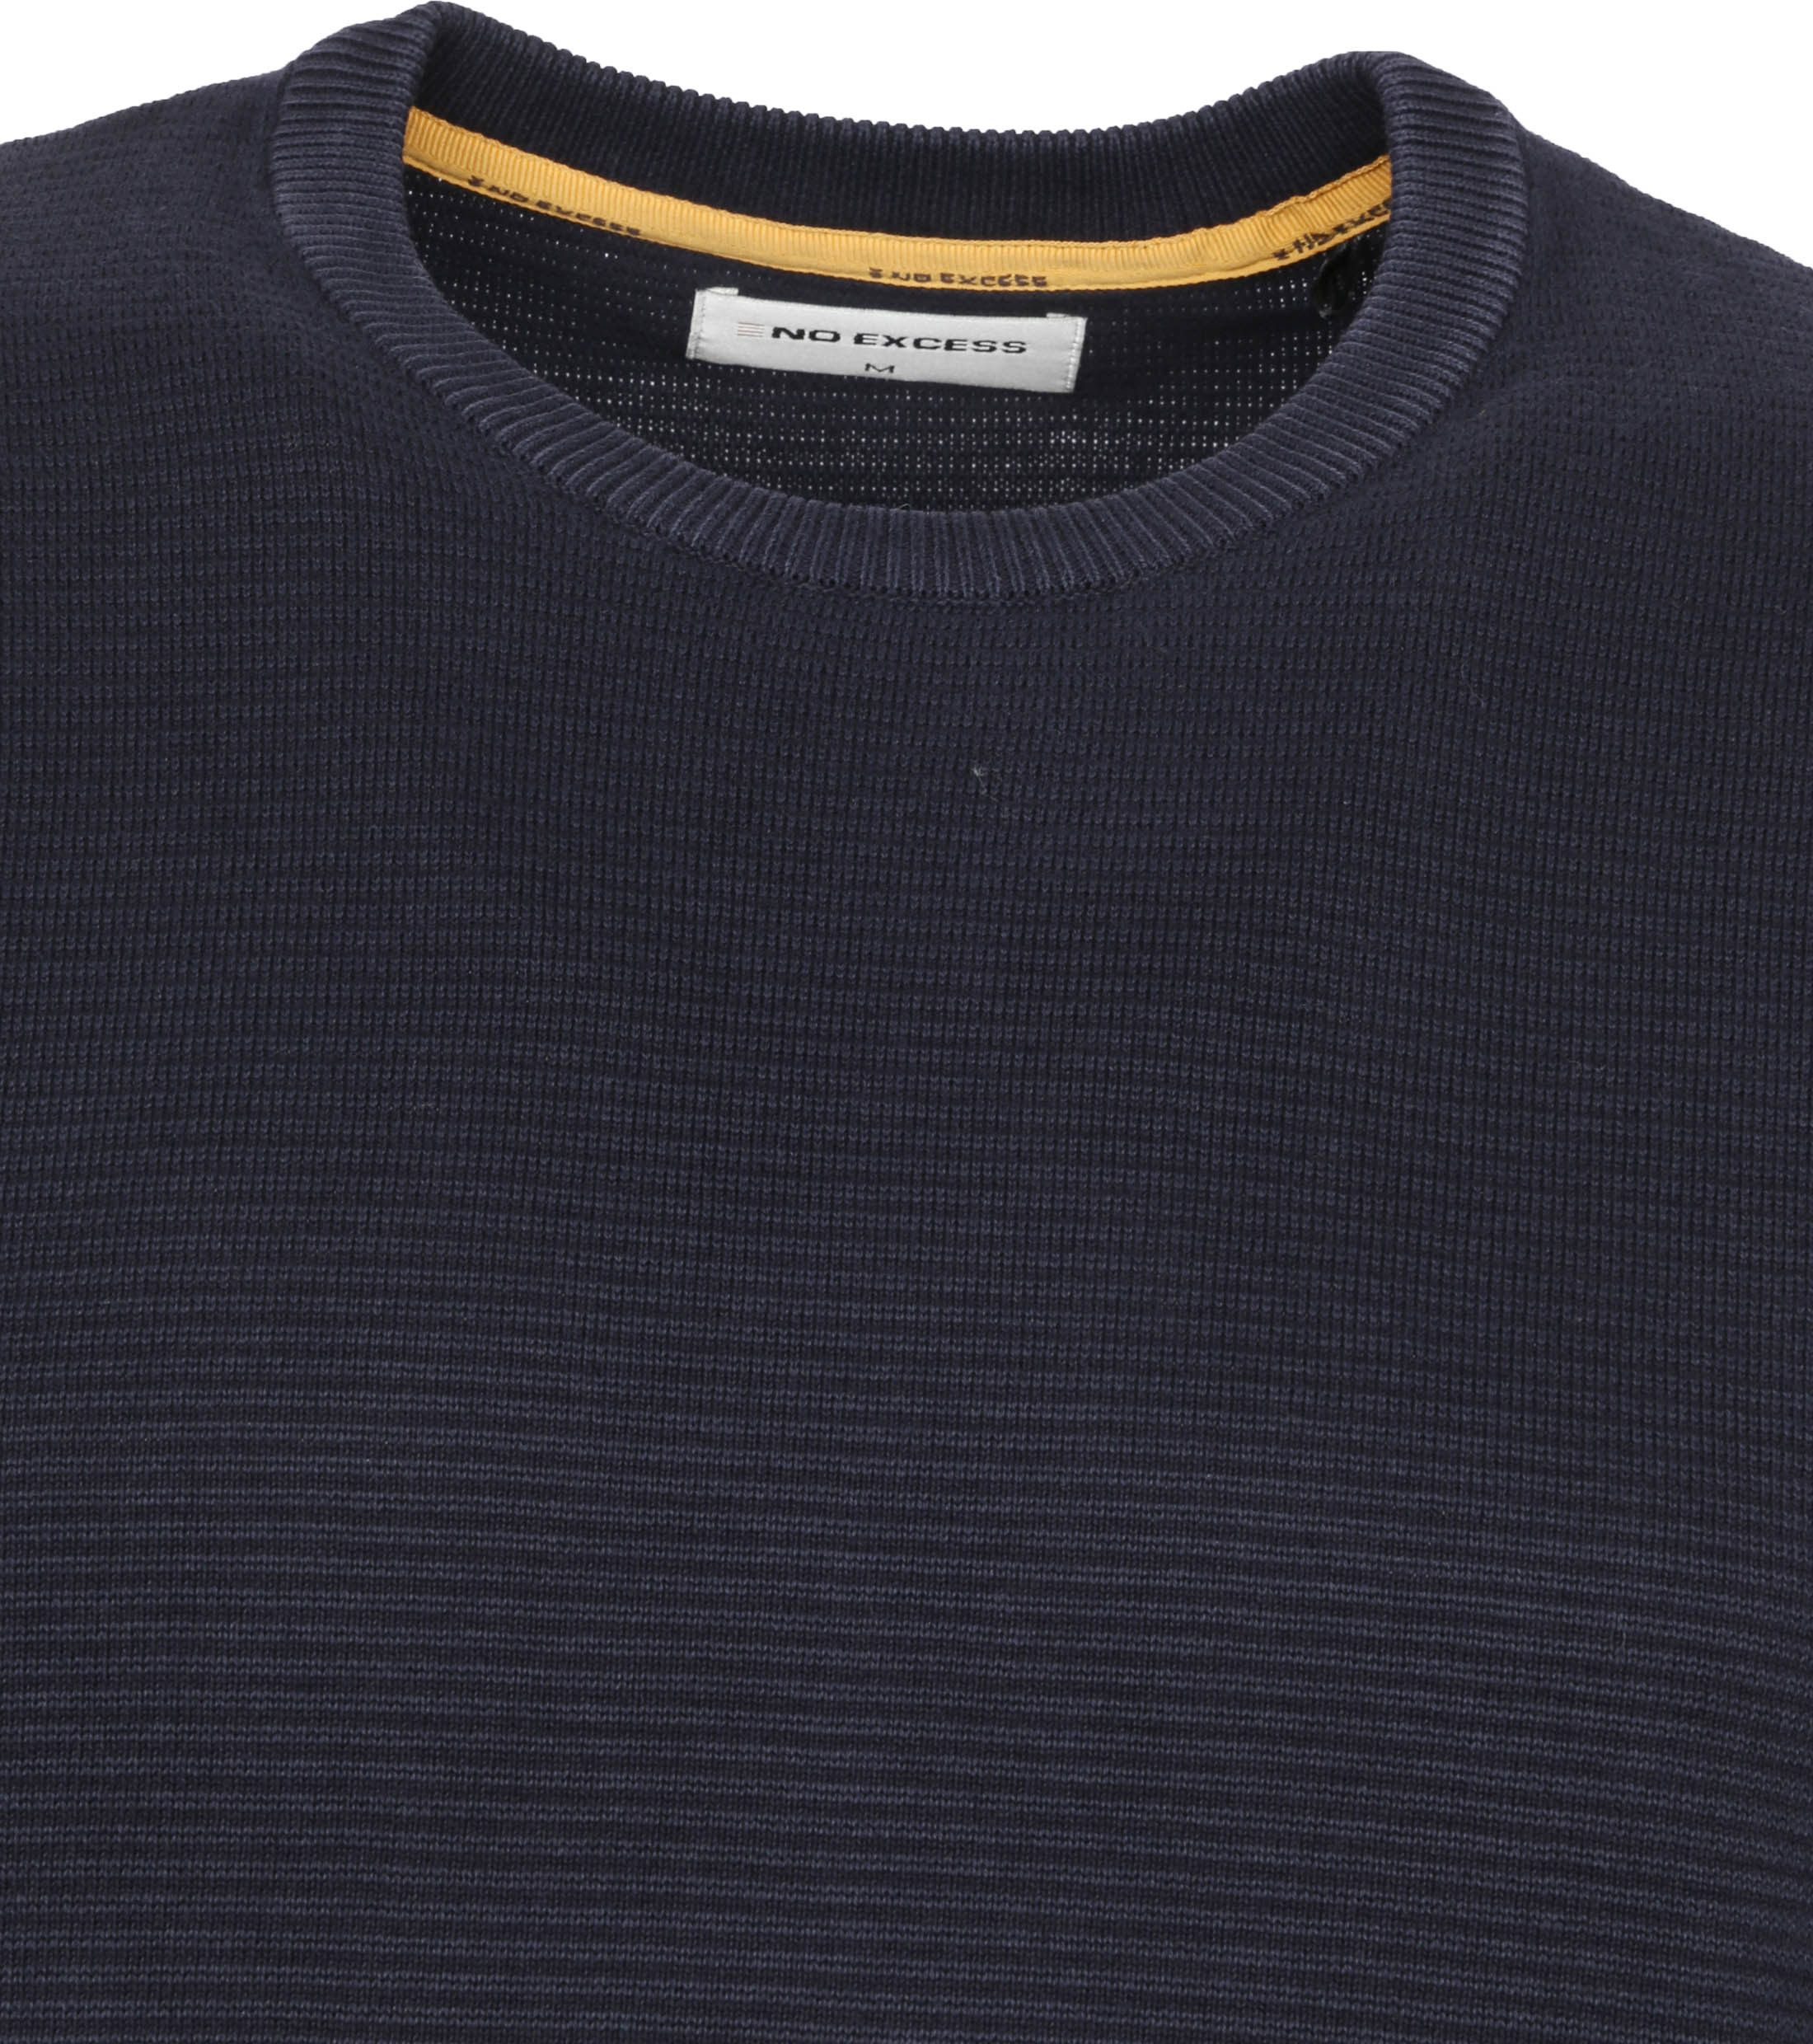 No-Excess Pullover Stone Washed Donkerblauw